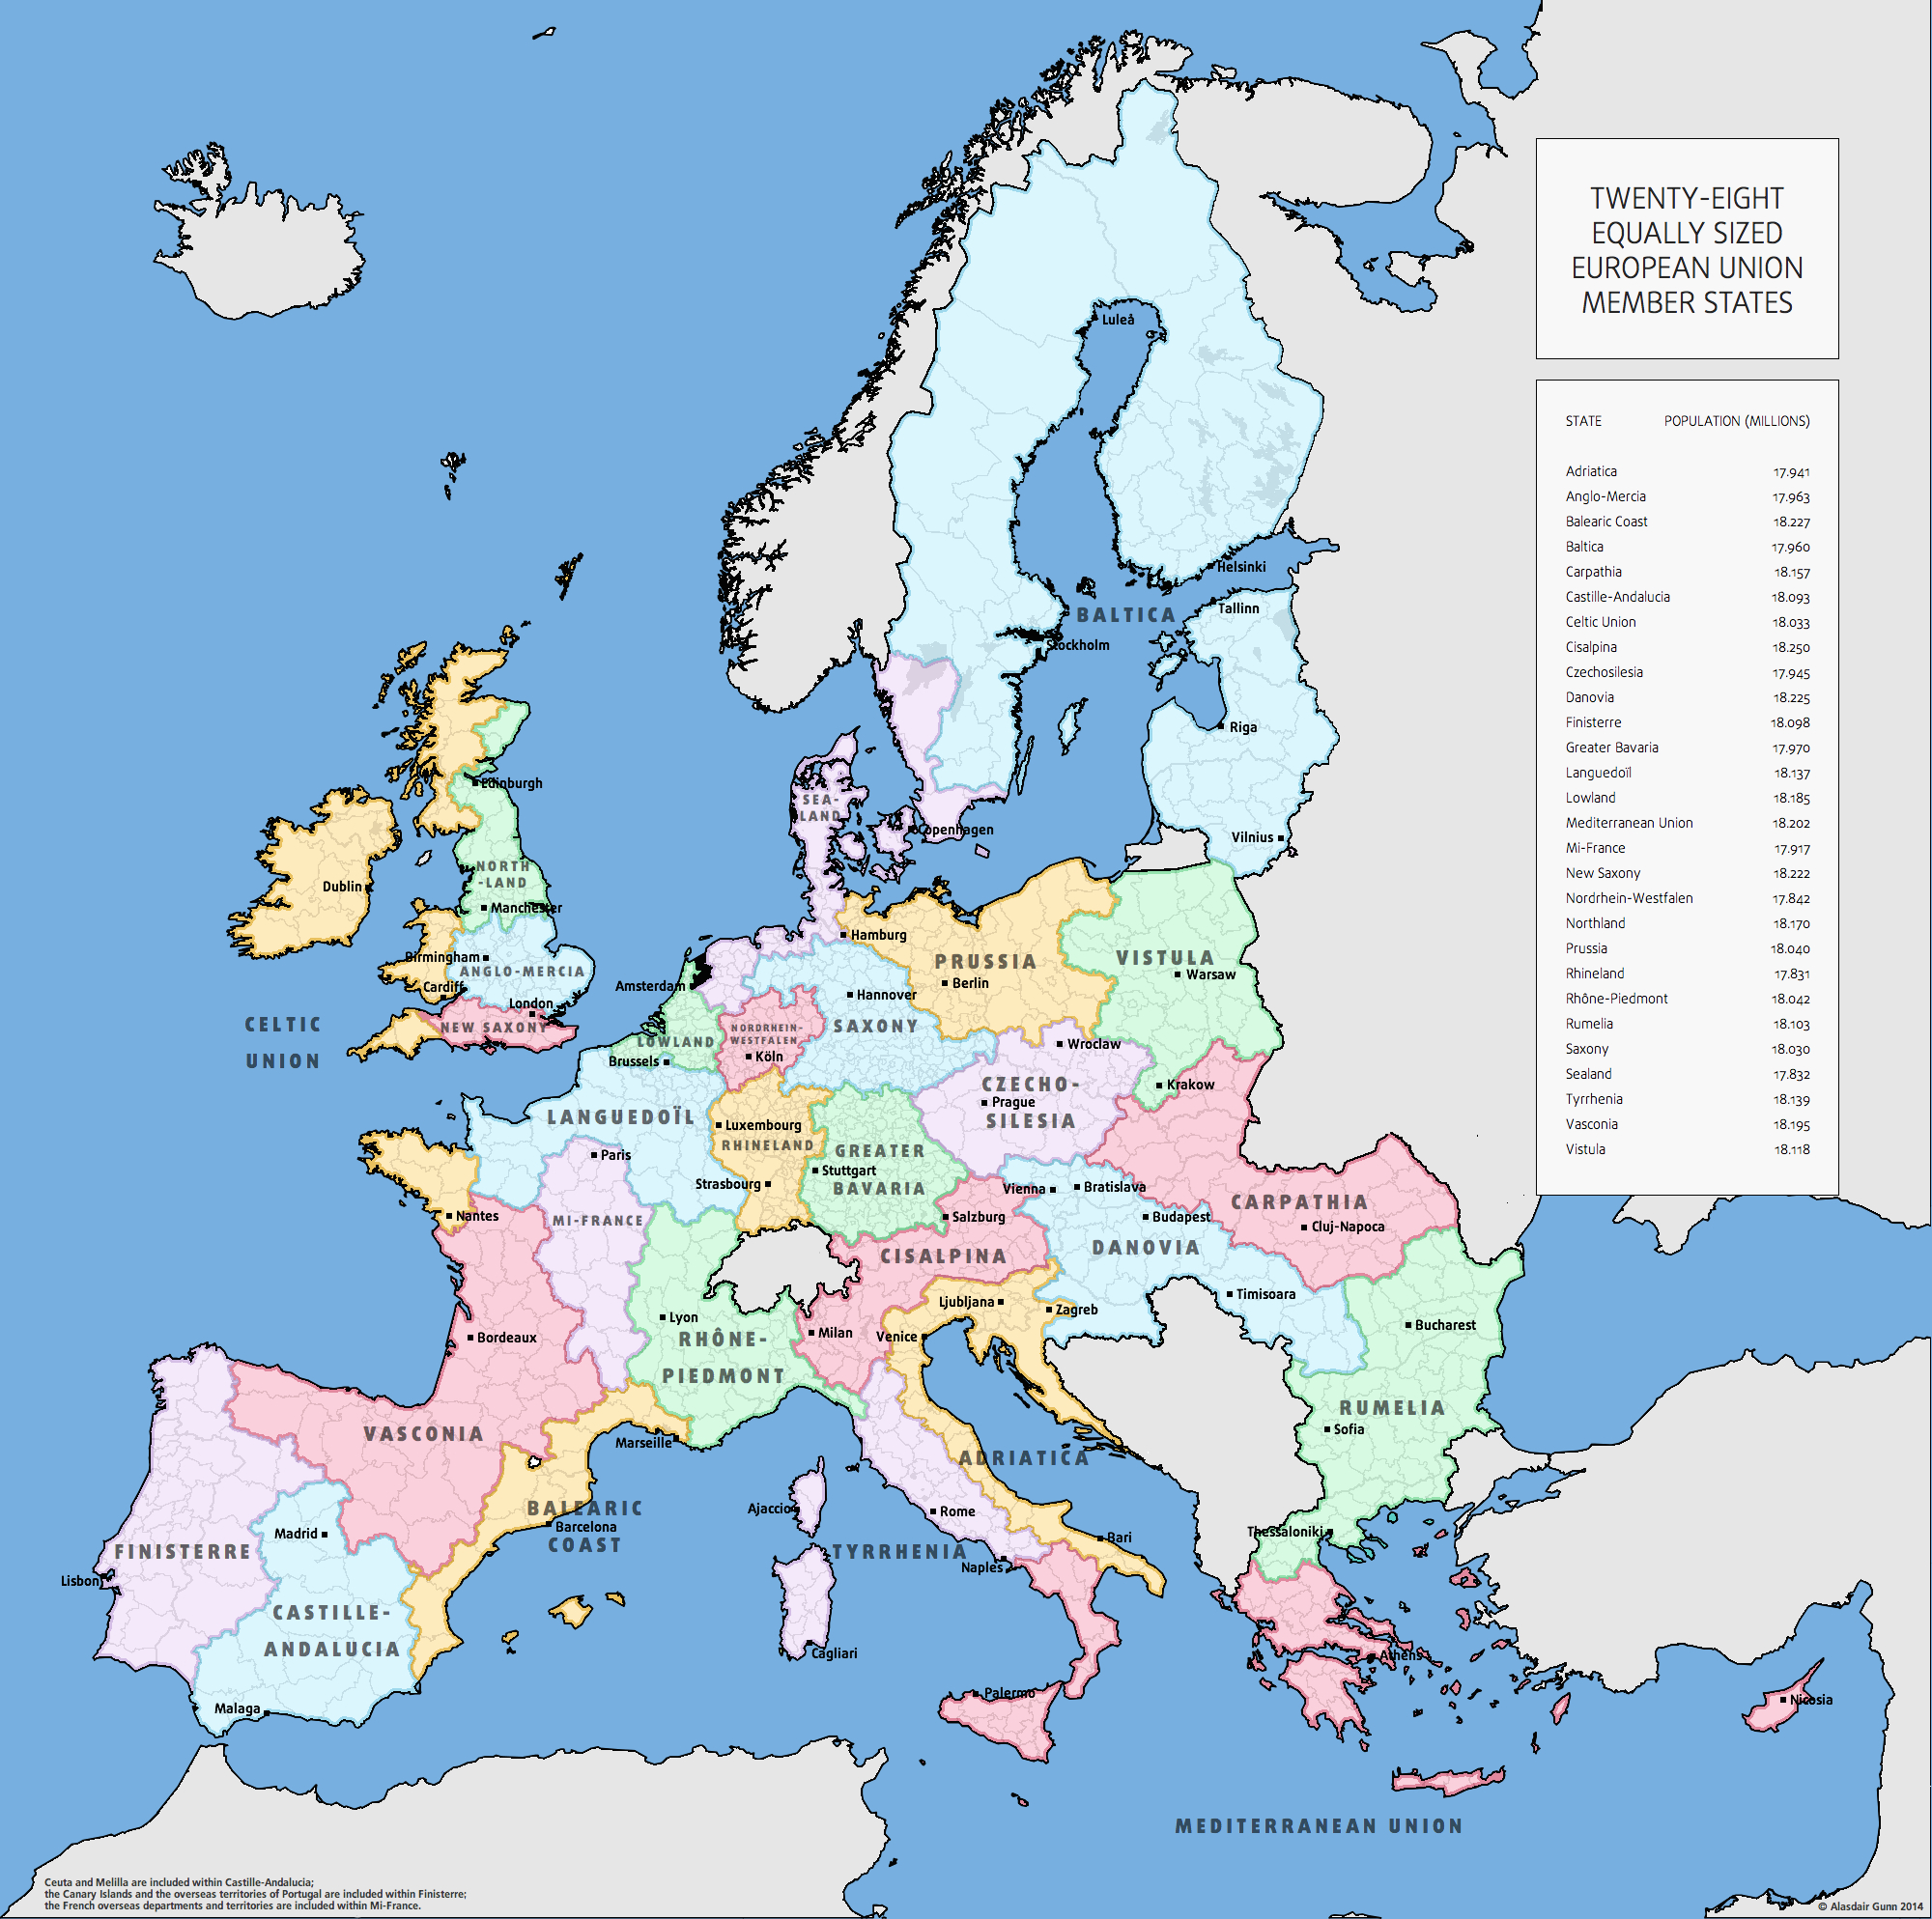 38 Maps That Explain Europe | Cartographie, Géographie Et intérieur Carte Union Europeene